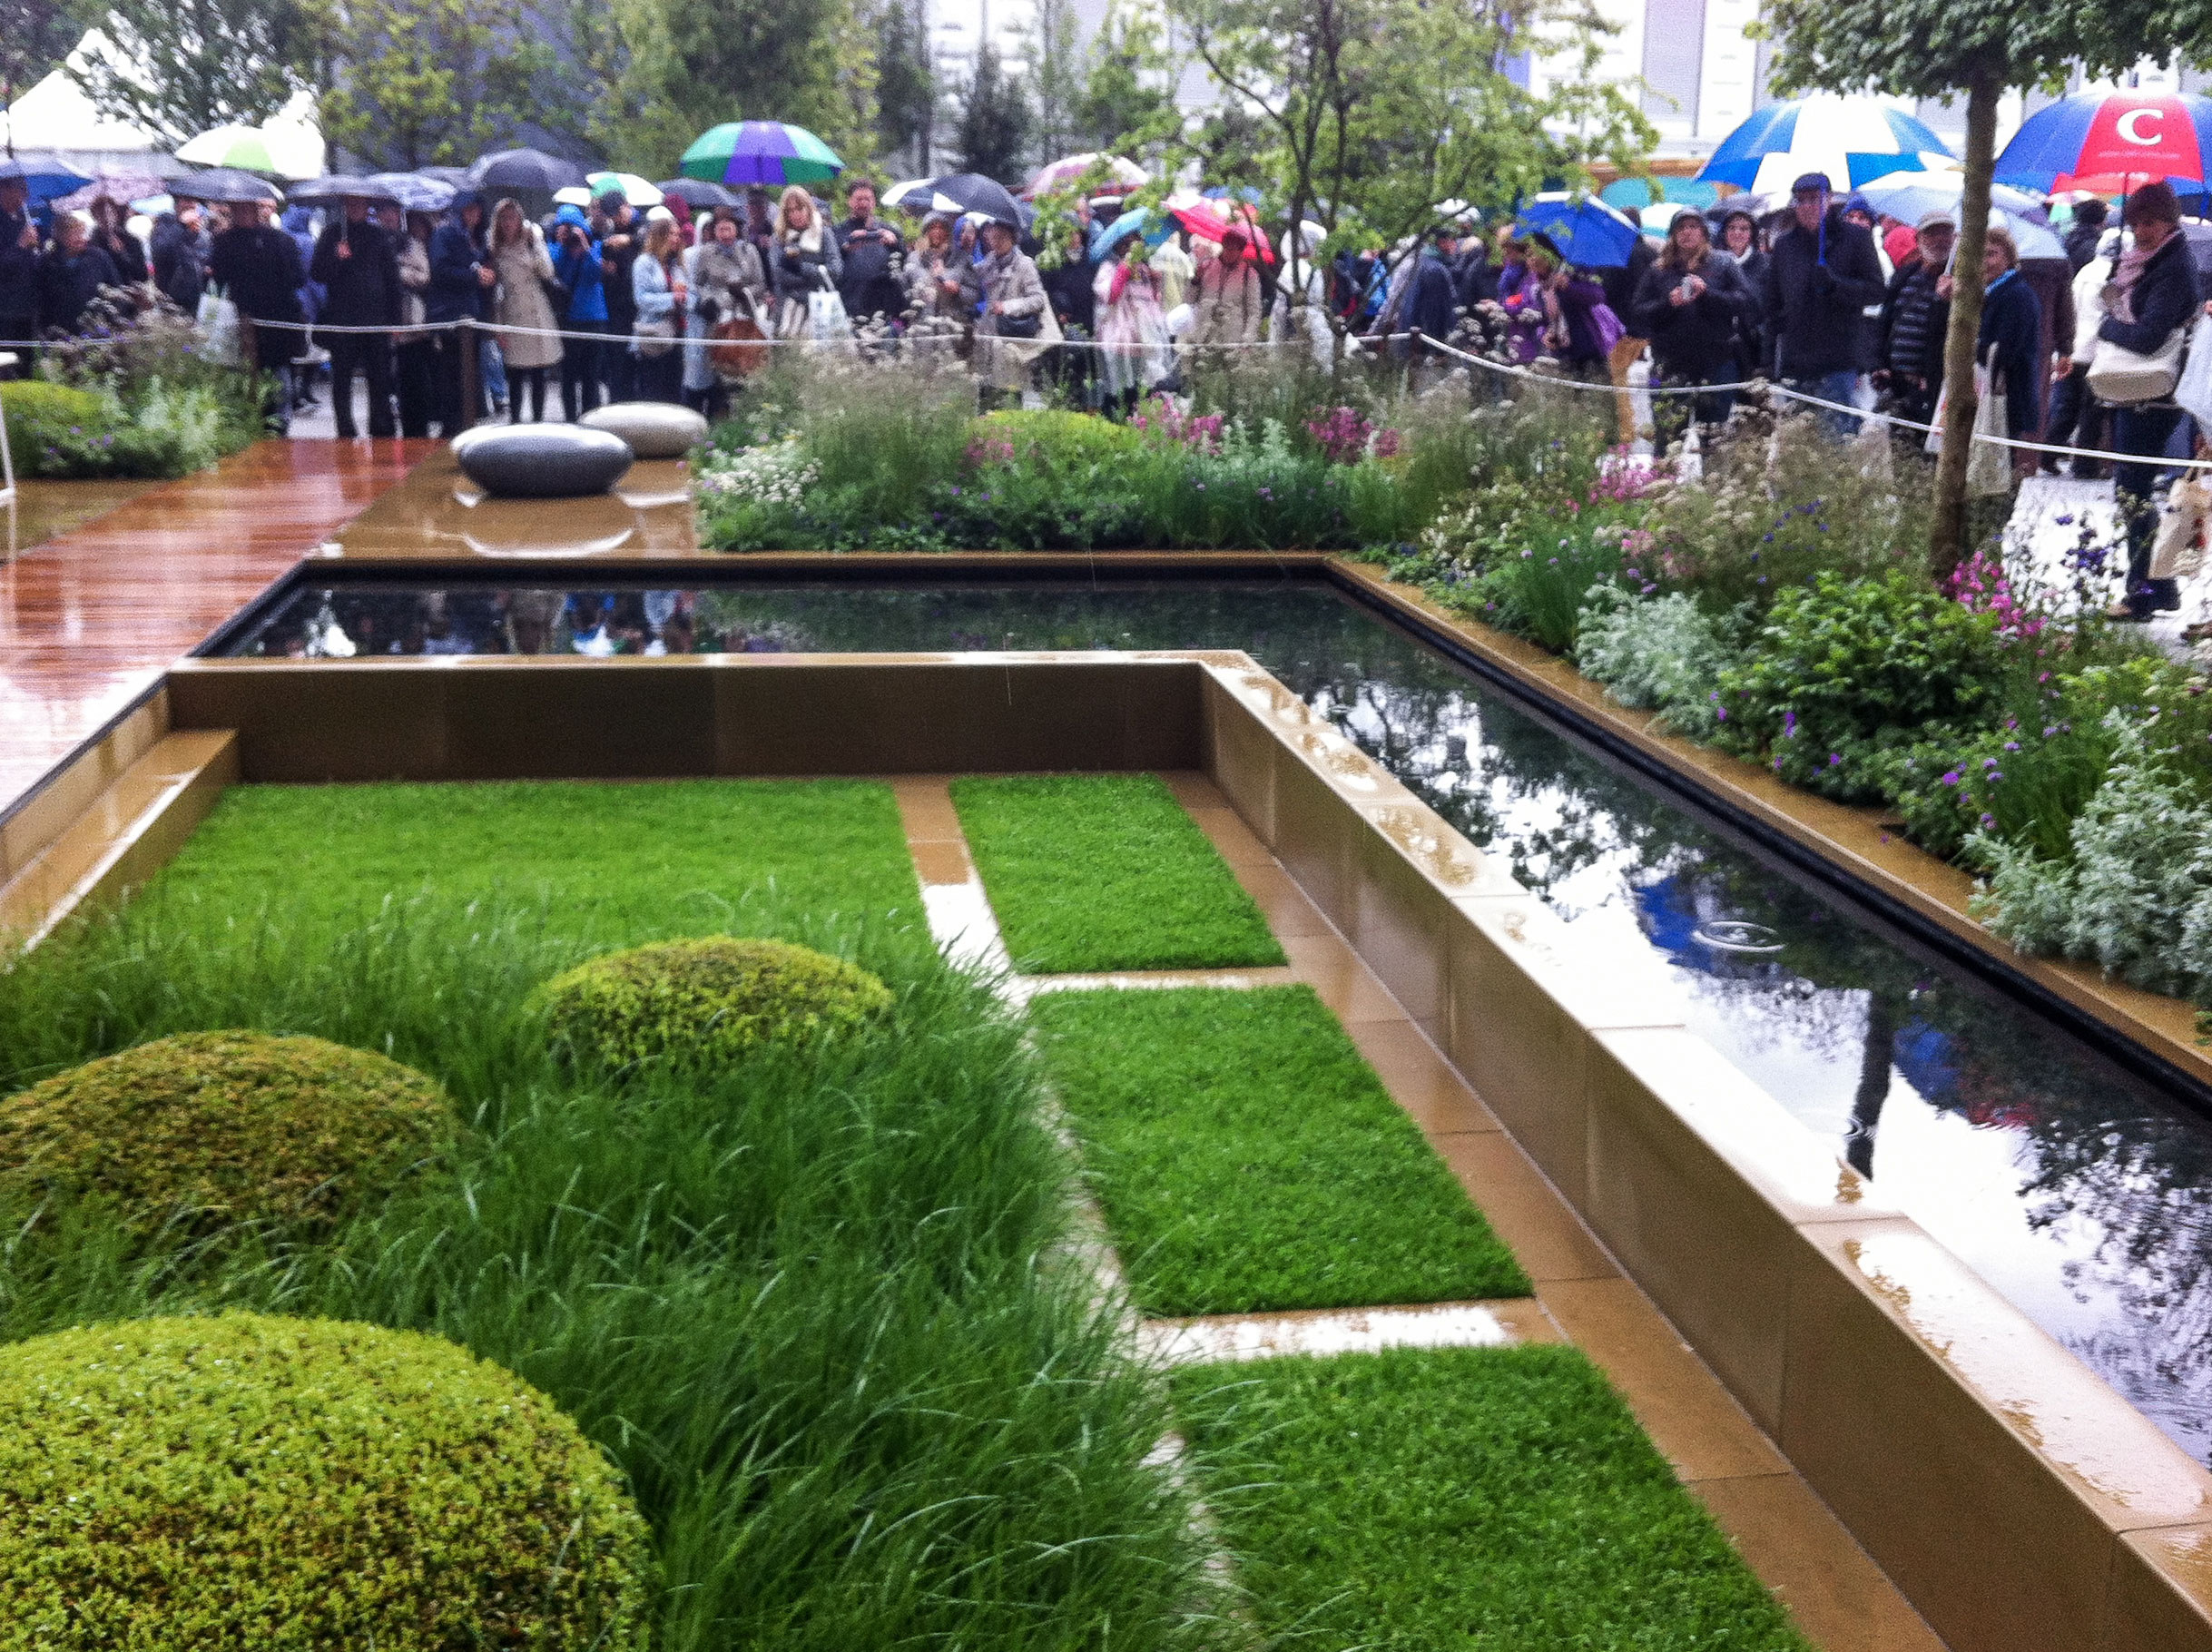 Chelsea crowds admire the finished show garden